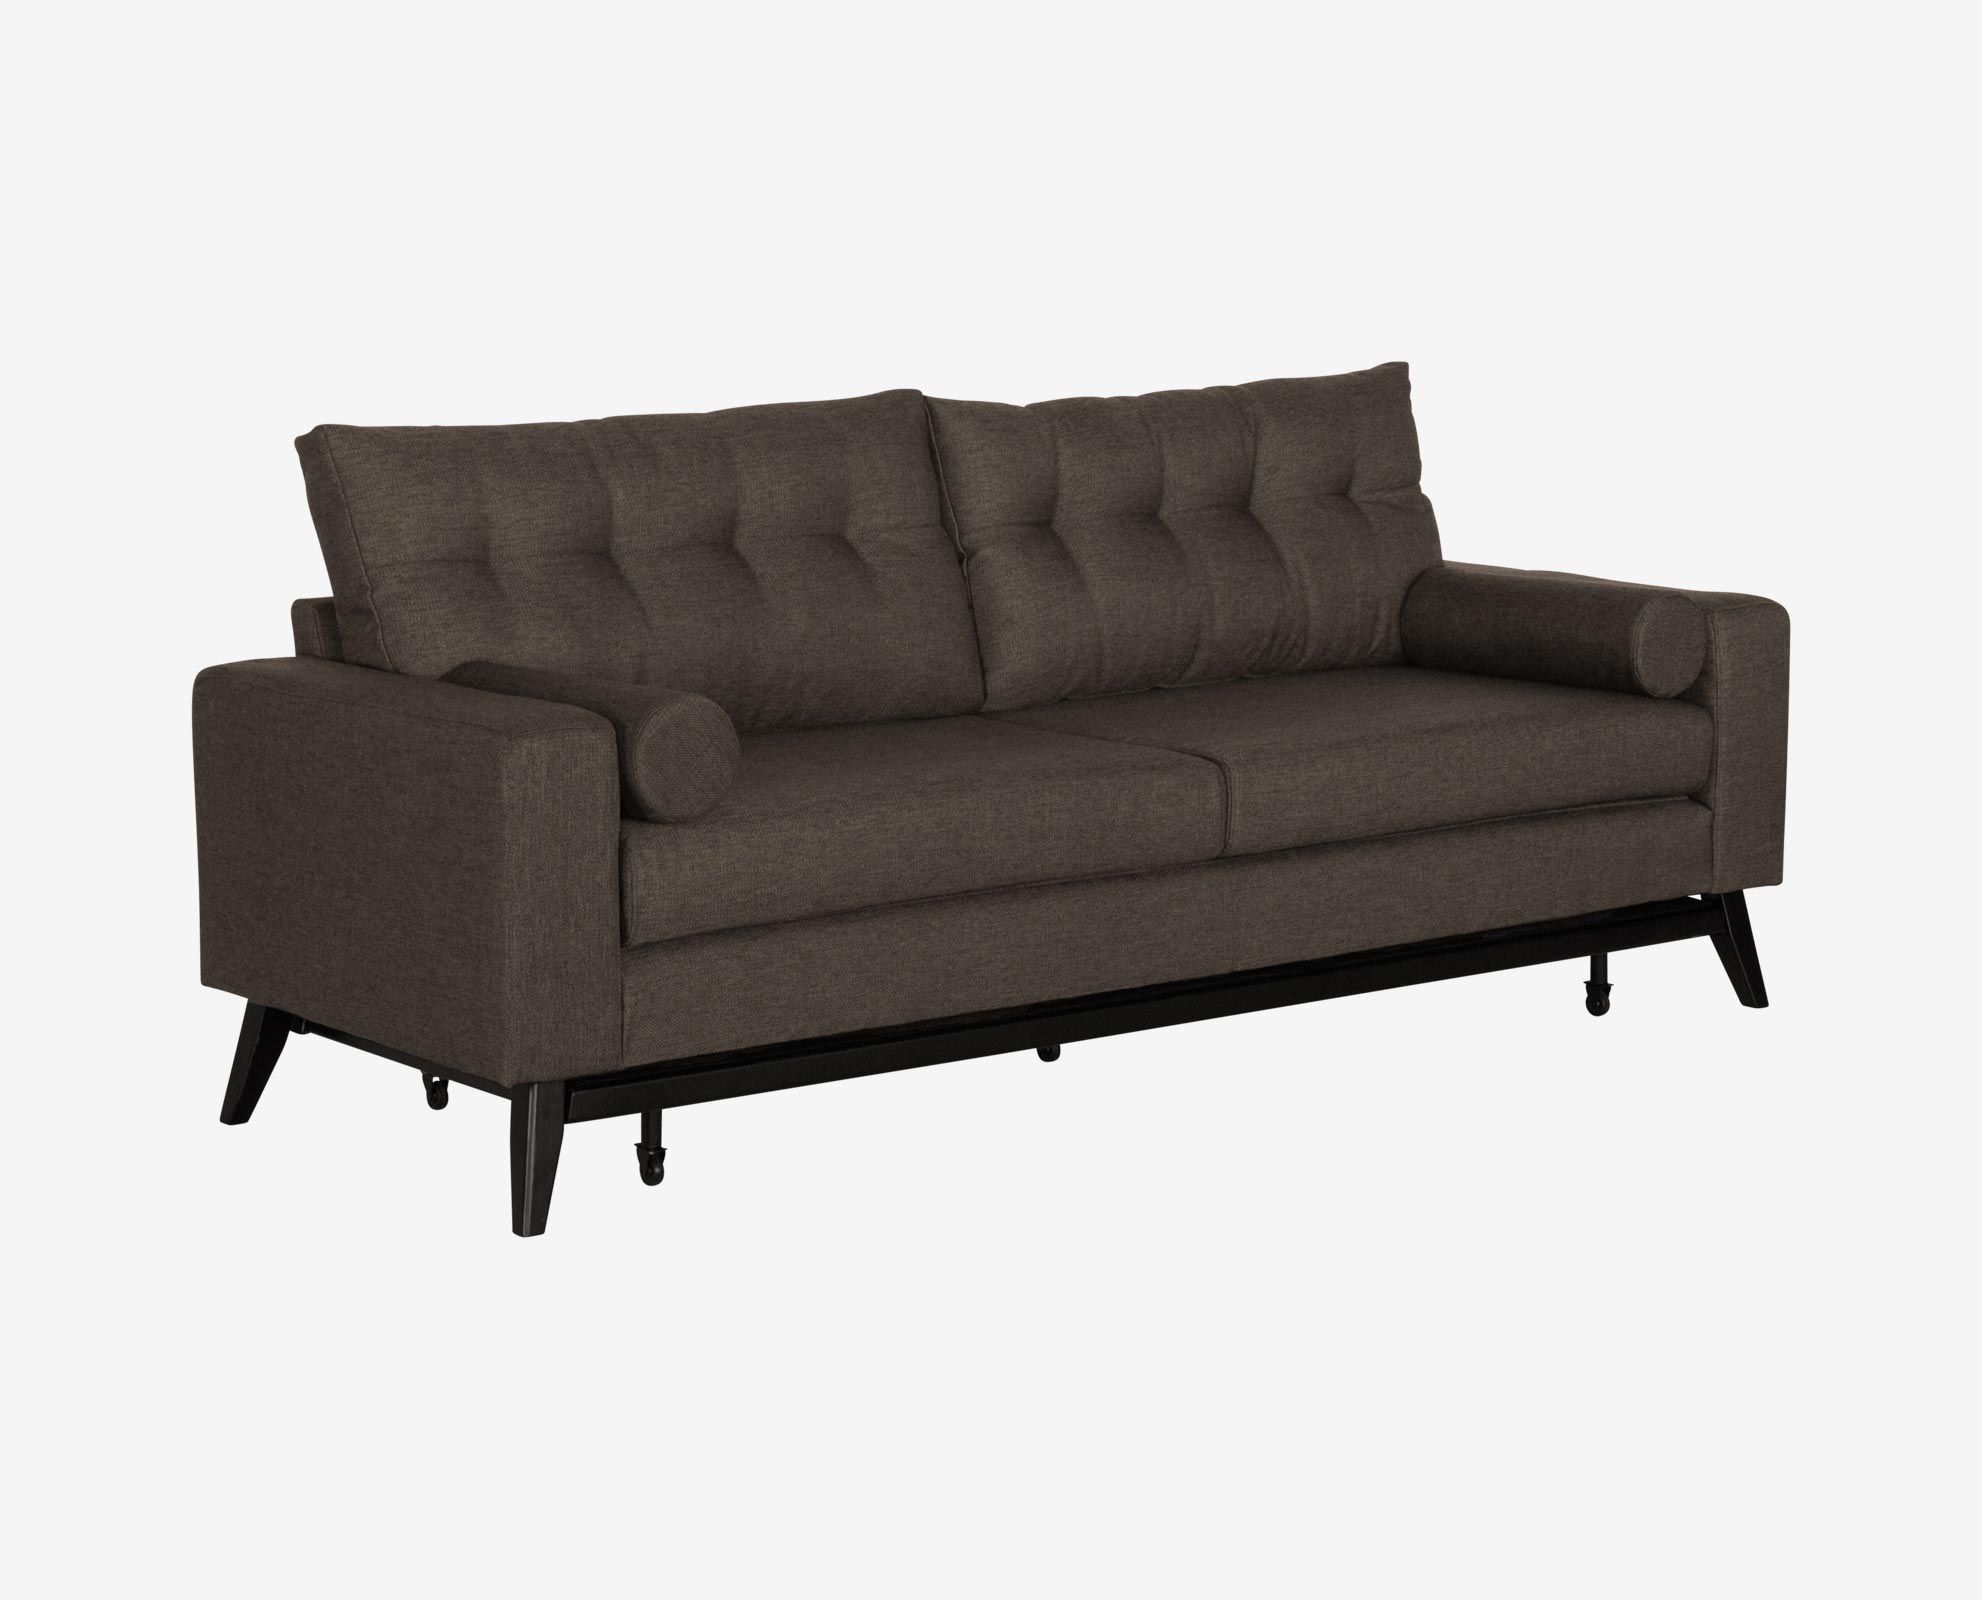 Dania Sleeper Sofas Leather Direct From Factory The Kenora Sofa Offers Clean Lines Angled